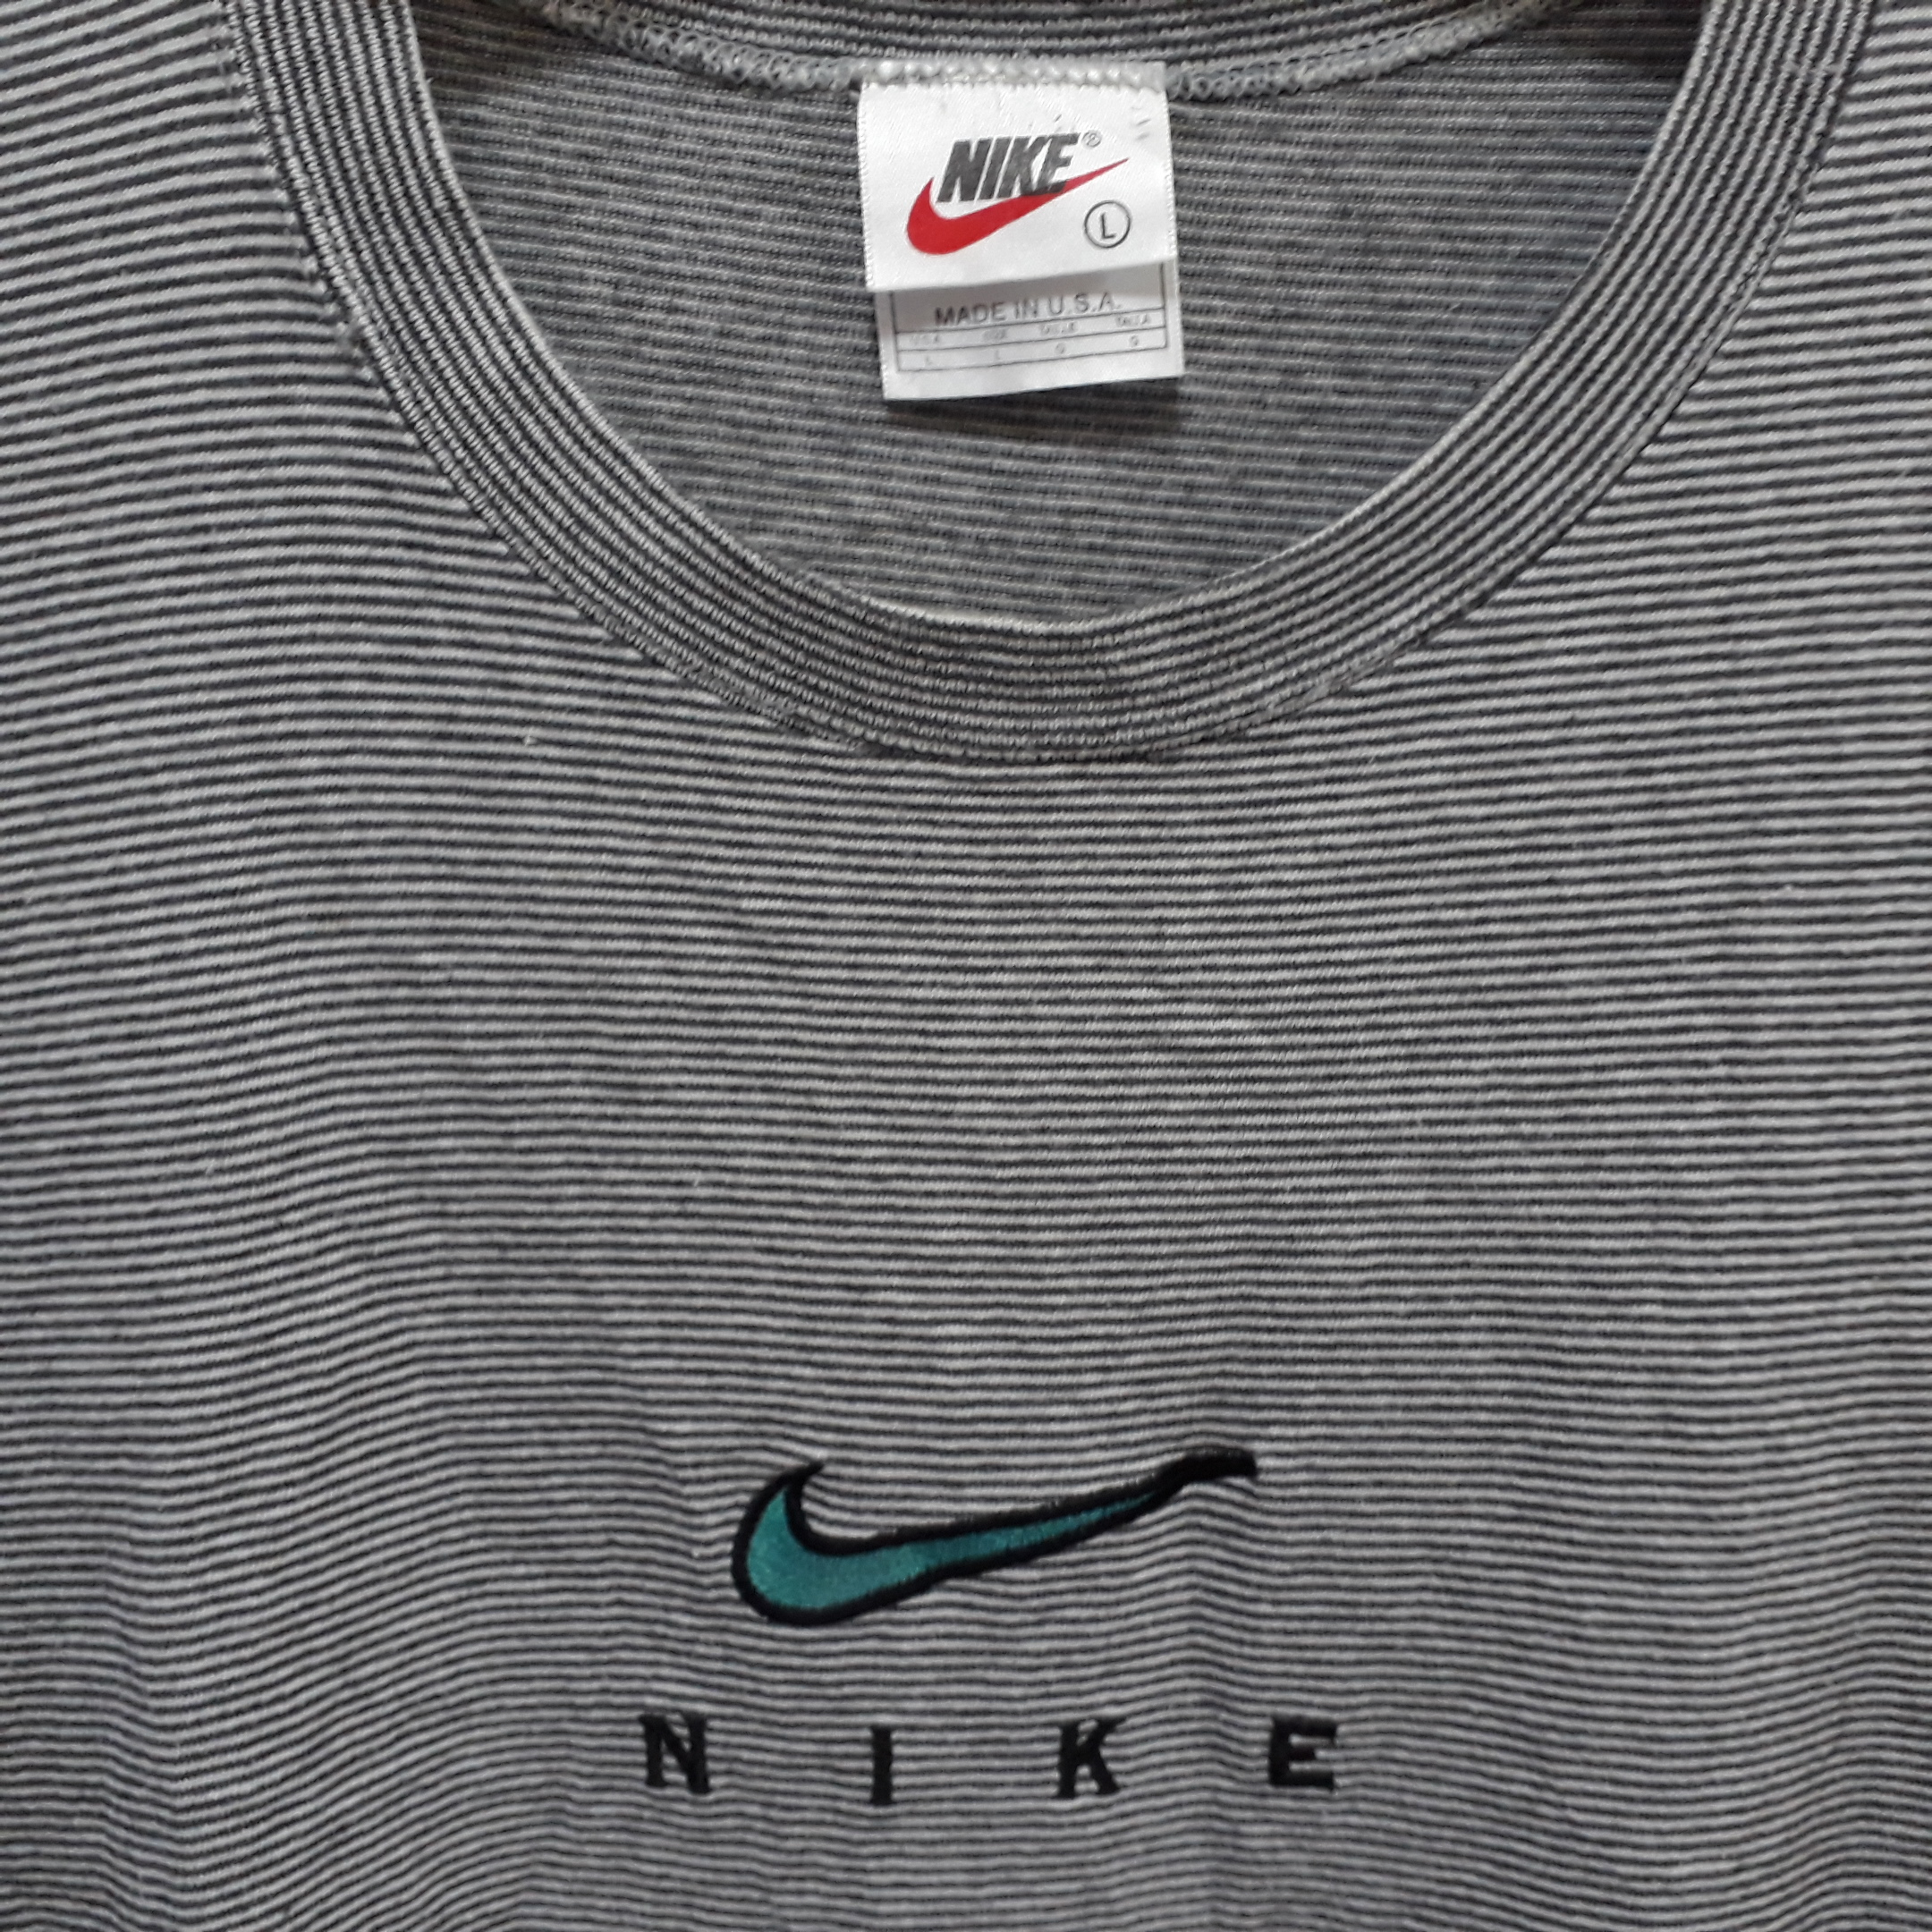 071c9a13 Nike Vintage 90s NIKE Striped T Shirt Swoosh Logo Embroidered Made ...